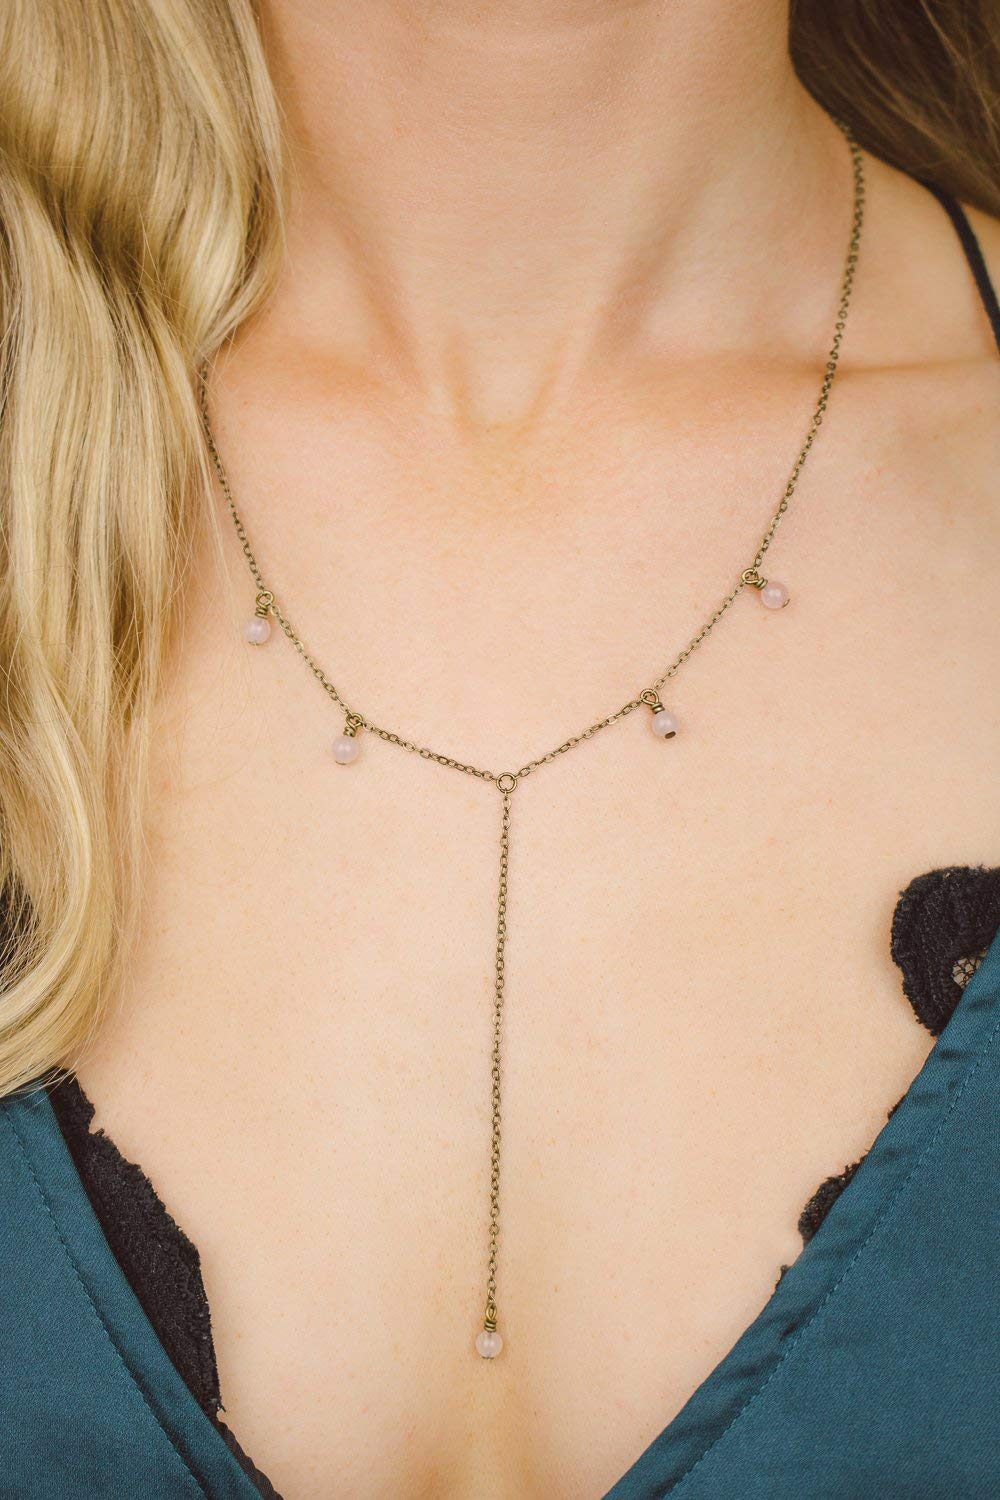 """Boho rose quartz lariat y necklace in bronze - 18"""" chain with 2"""" adjustable extender - January birthstone"""